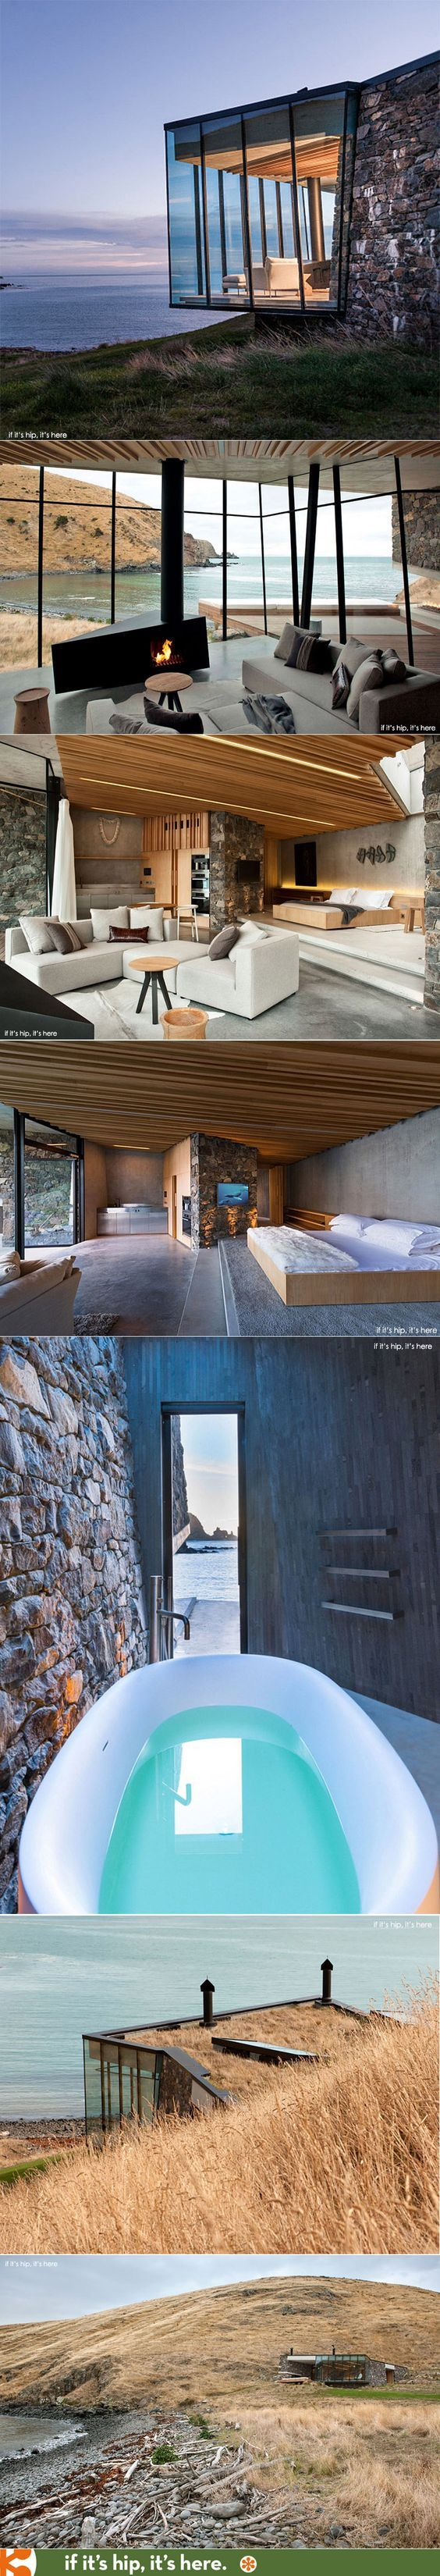 Sexy, Secluded, Seascape Retreat in New Zealand | http://www.ifitshipitshere.com/seascape-retreat-in-new-zealand/: